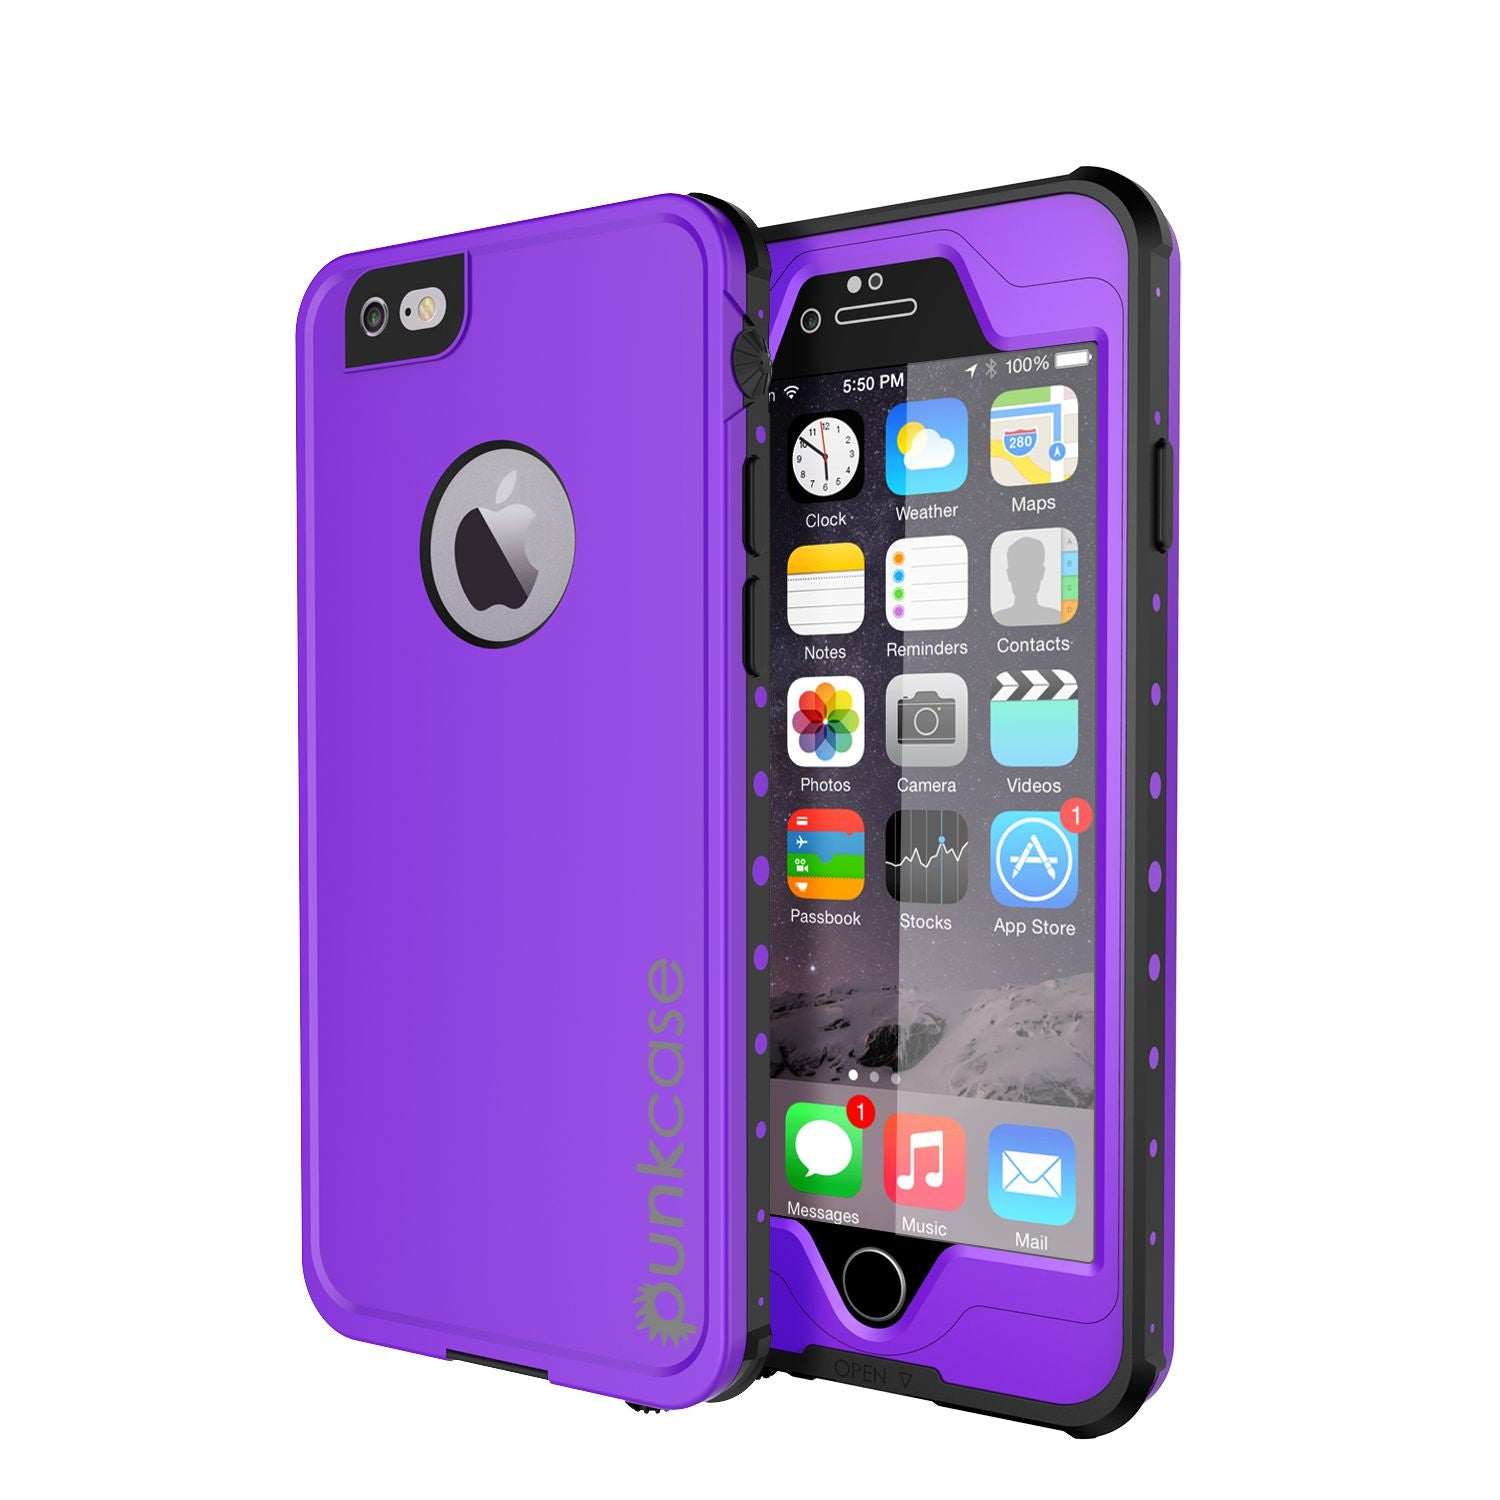 Amazon.com: EYN Products Case for iPhone 6 Plus - Retail Packaging ...